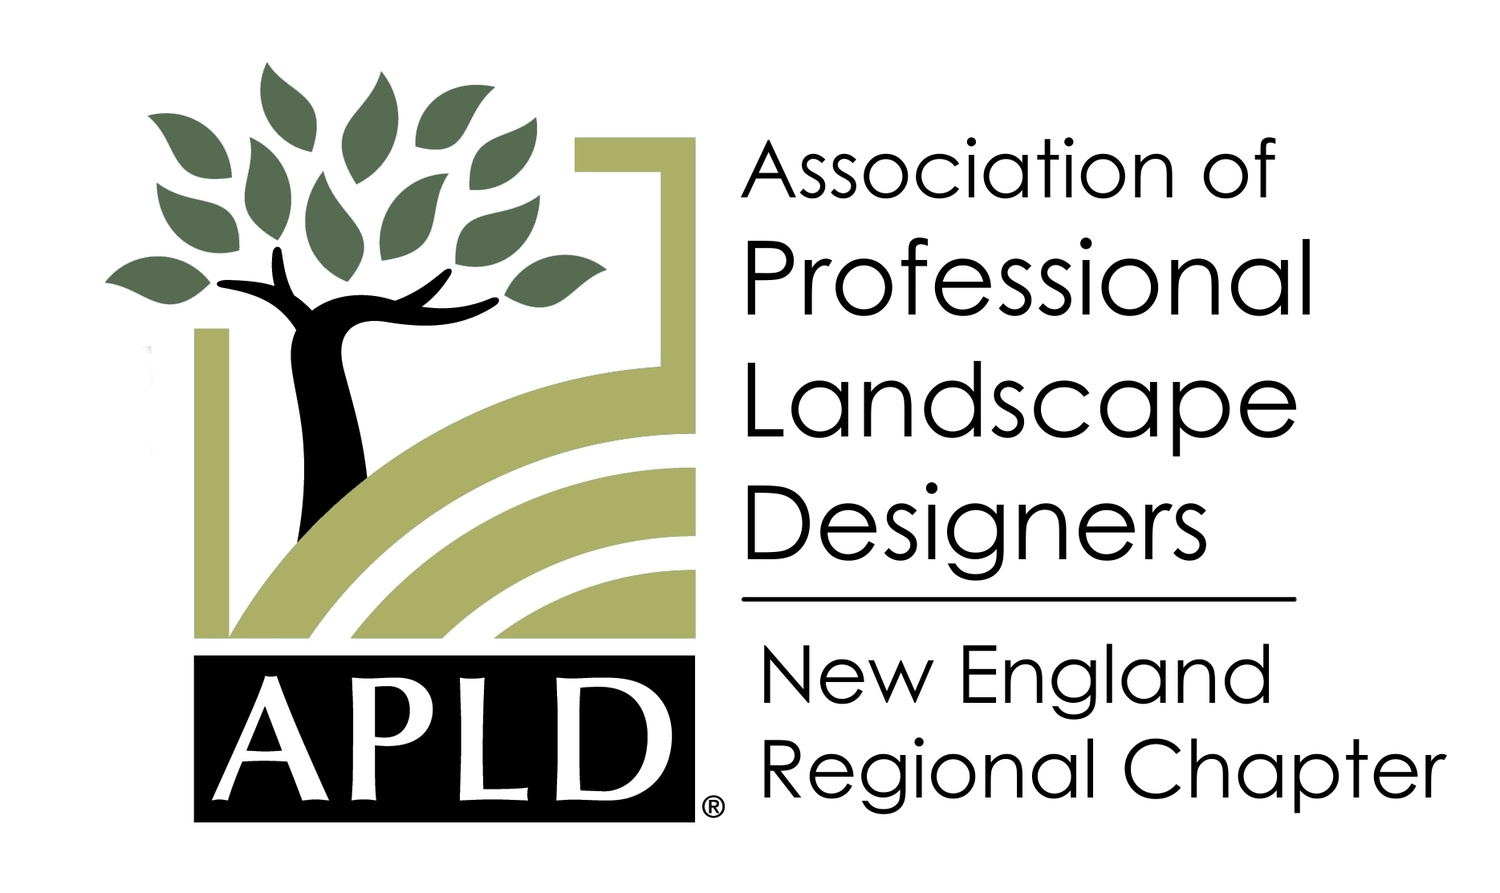 APLD New England